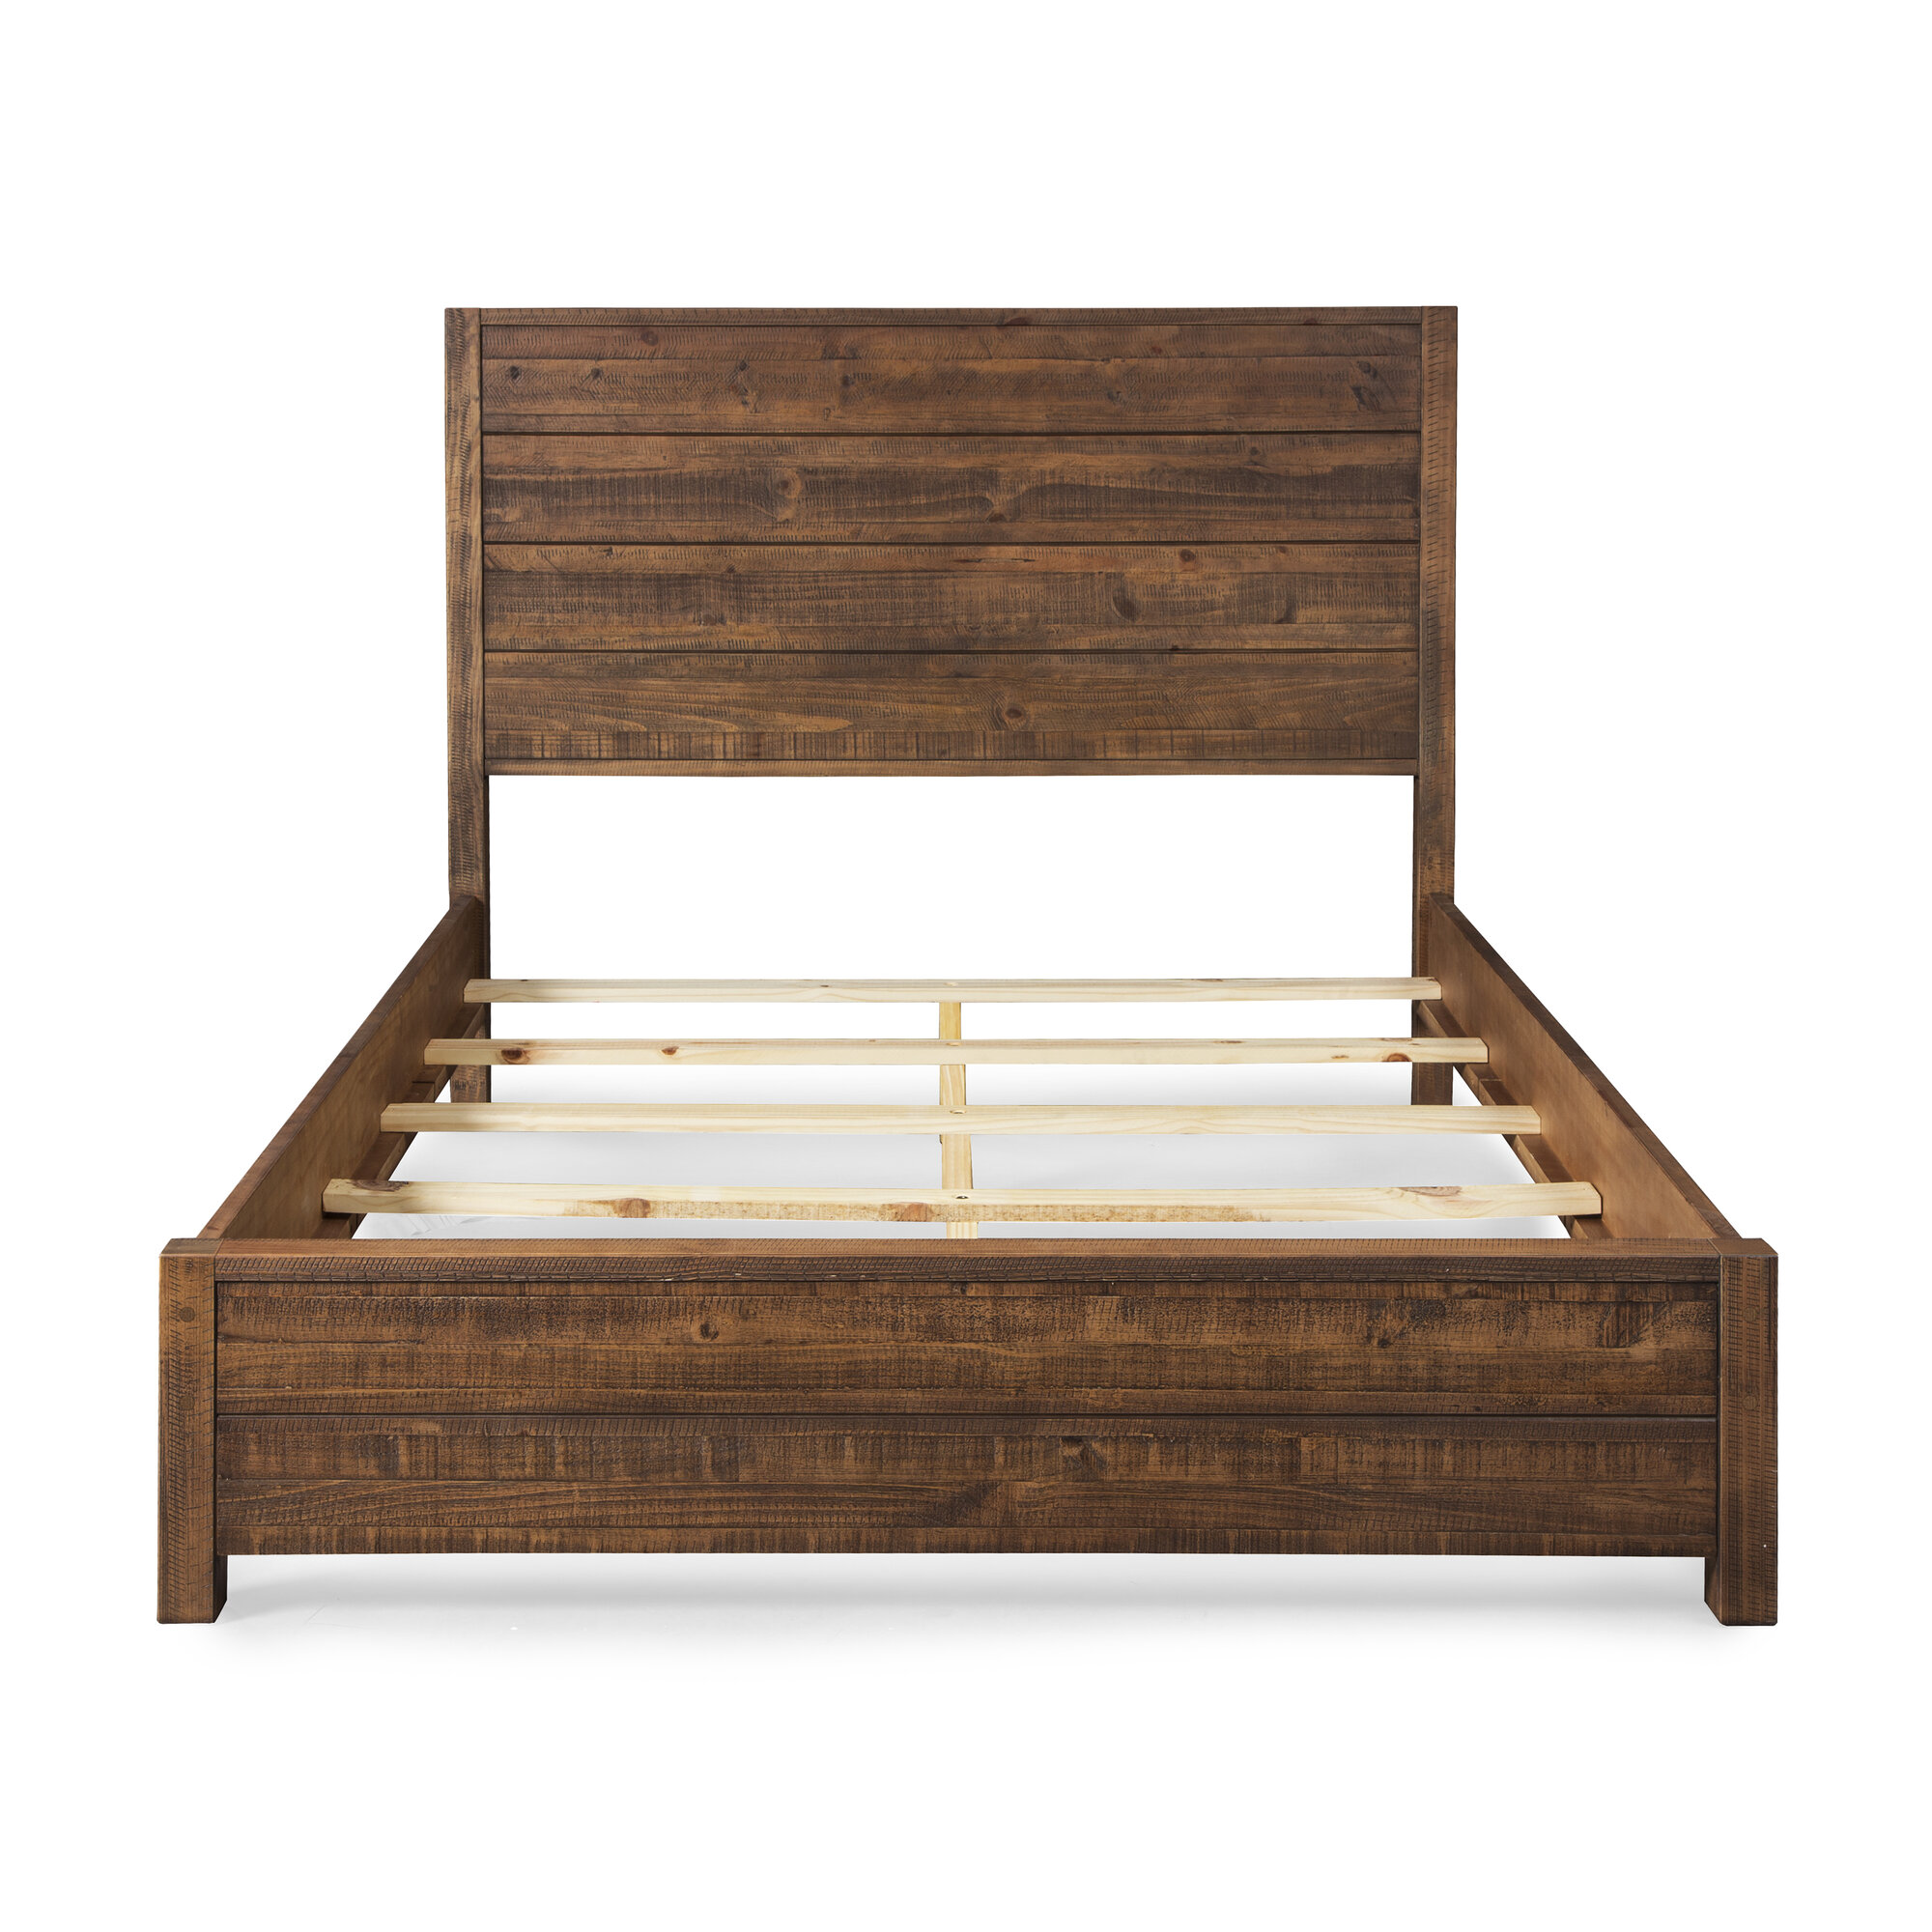 Furniture Stunning Display Of Wood Grain In A: Grain Wood Furniture Montauk Panel Bed